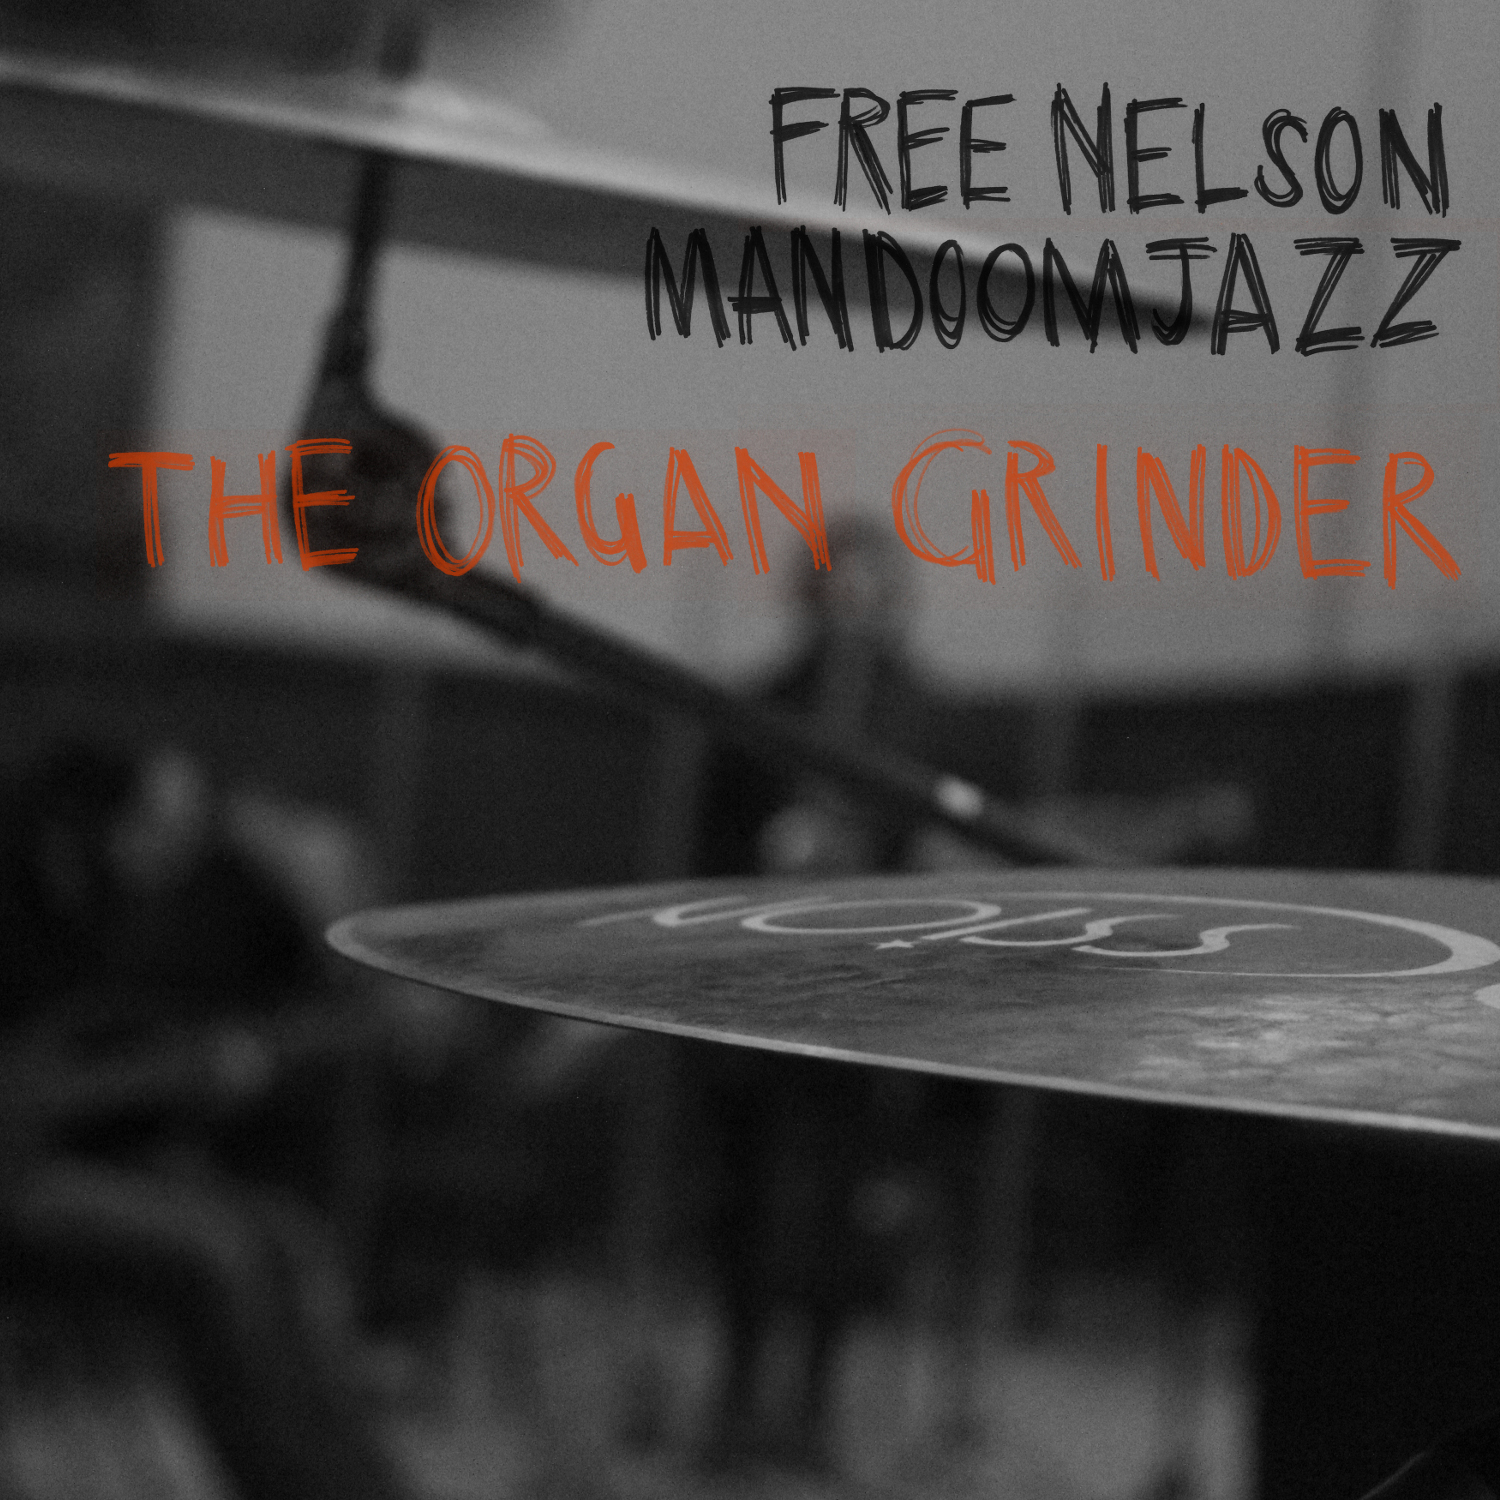 Review of Free Nelson Mandoomjazz: The Organ Grinder